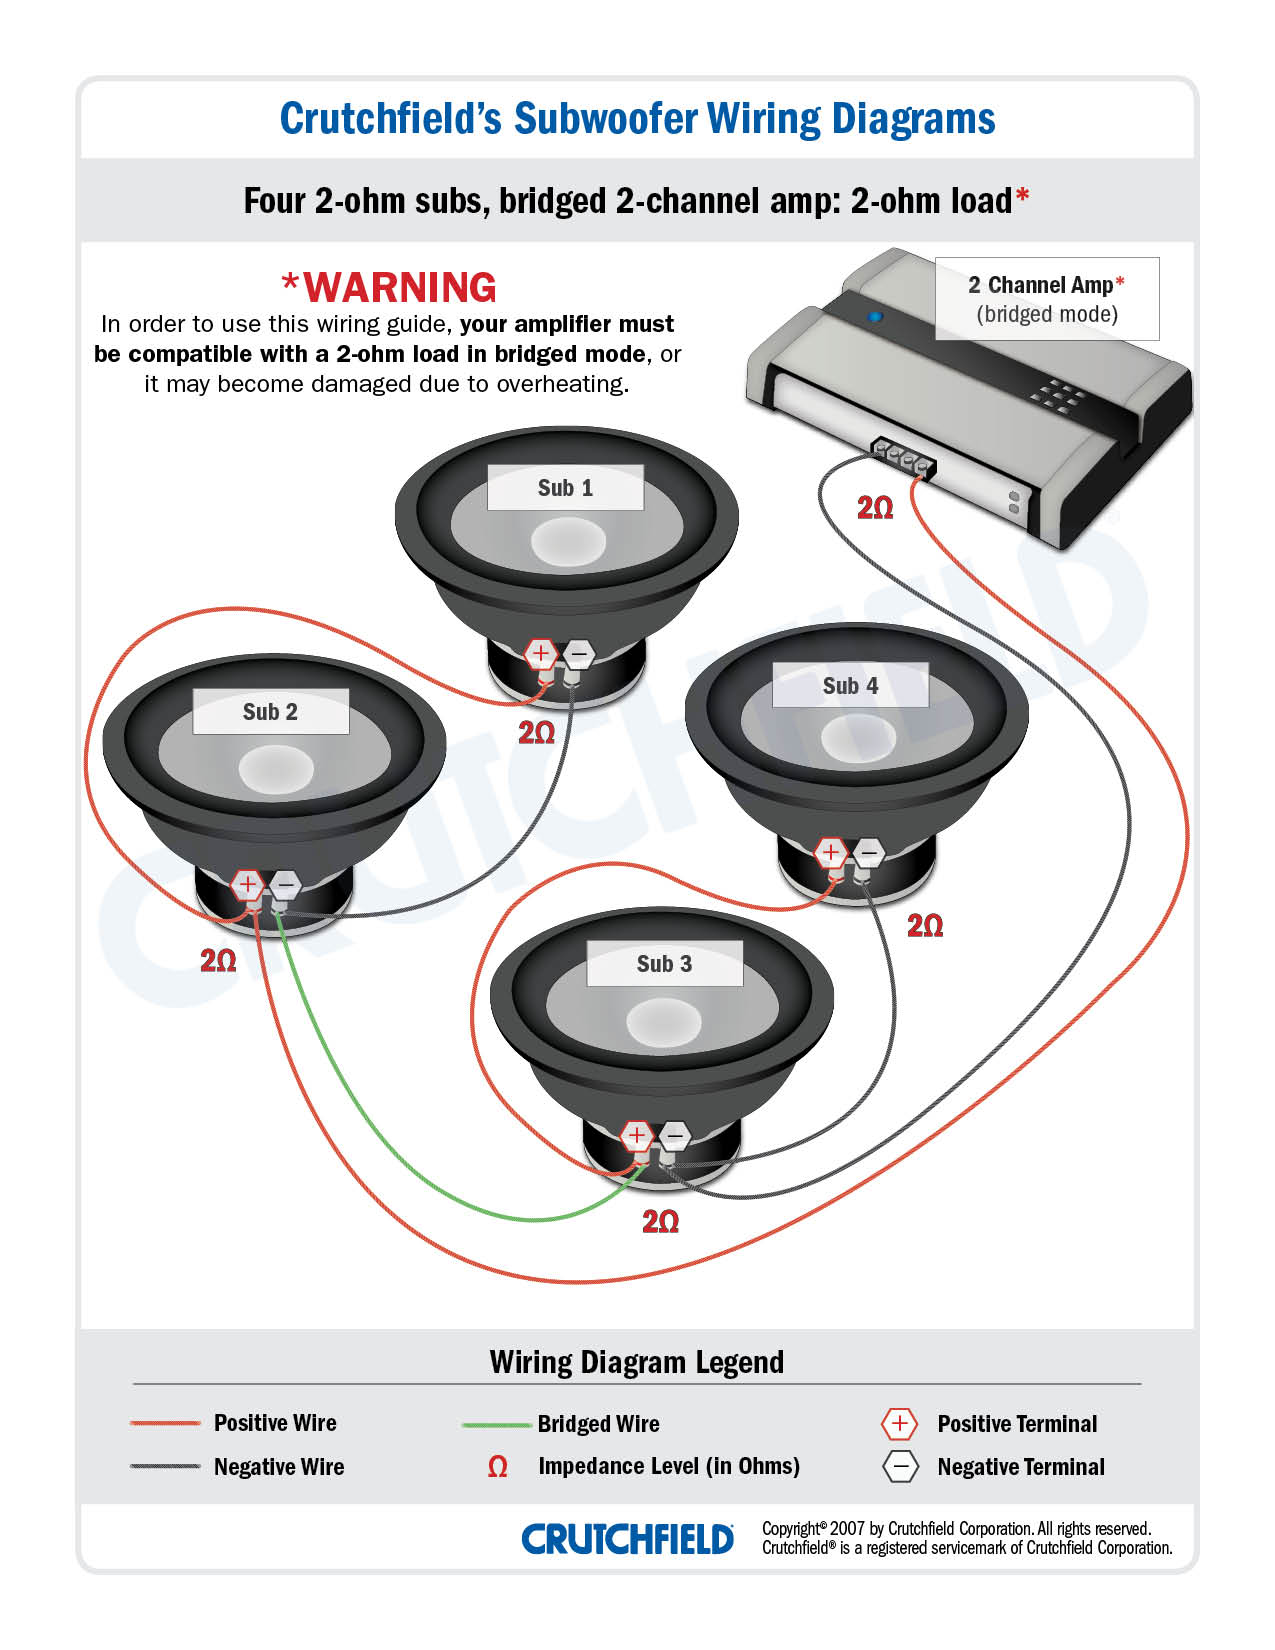 Car Stereo Amp Wiring Diagram from images.crutchfieldonline.com